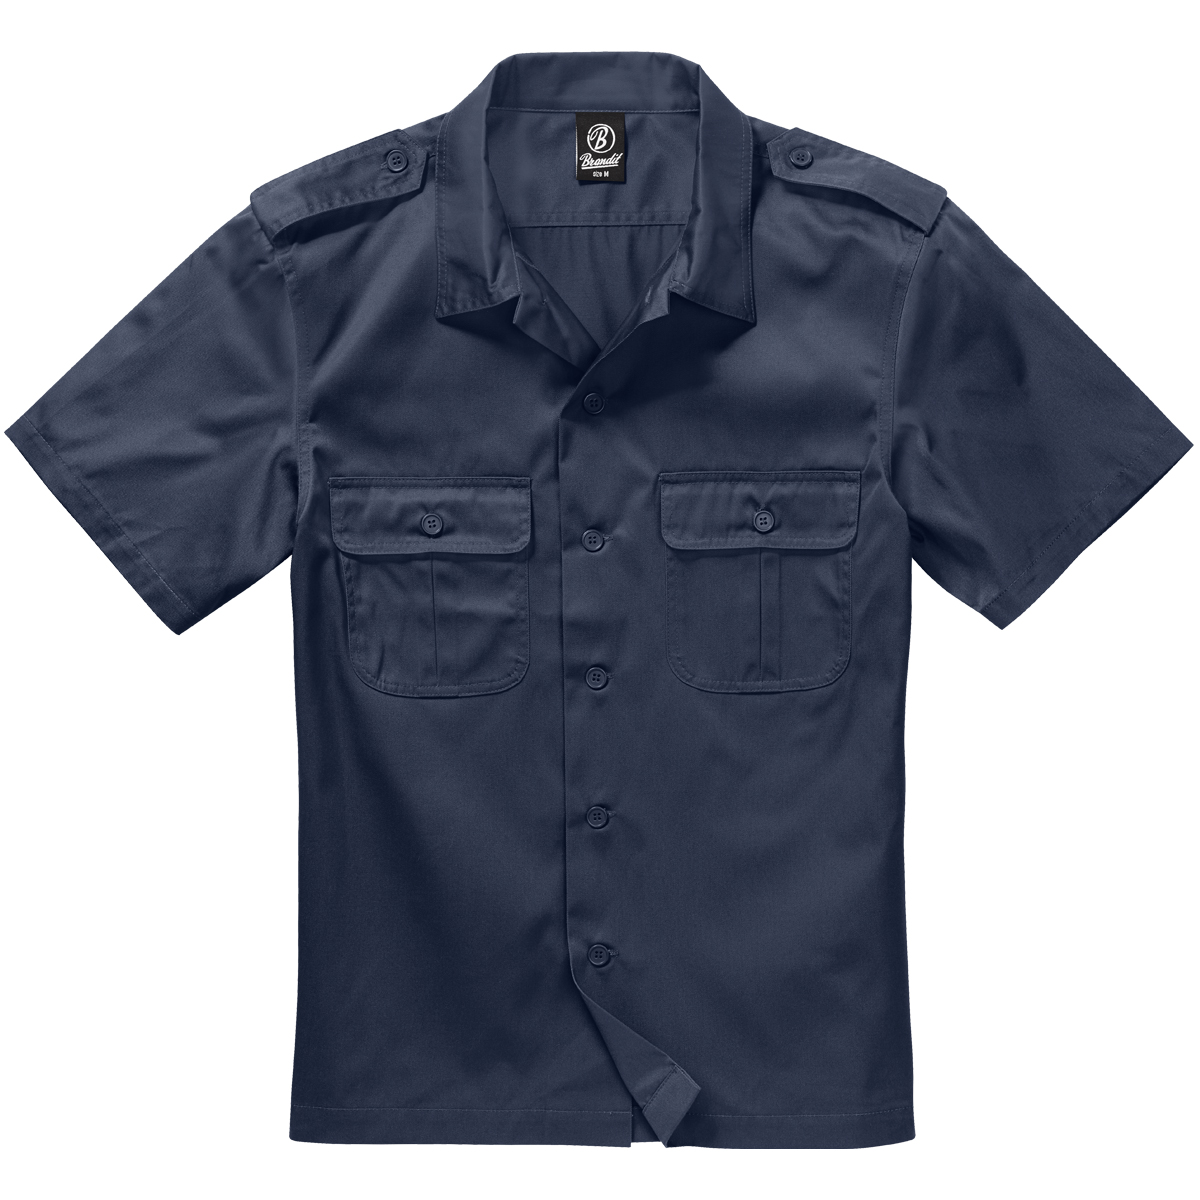 88092b199 Sentinel Brandit US Shirt 1 2 Short Sleeve Work Mens Army Uniform Summer  Top Marine Navy